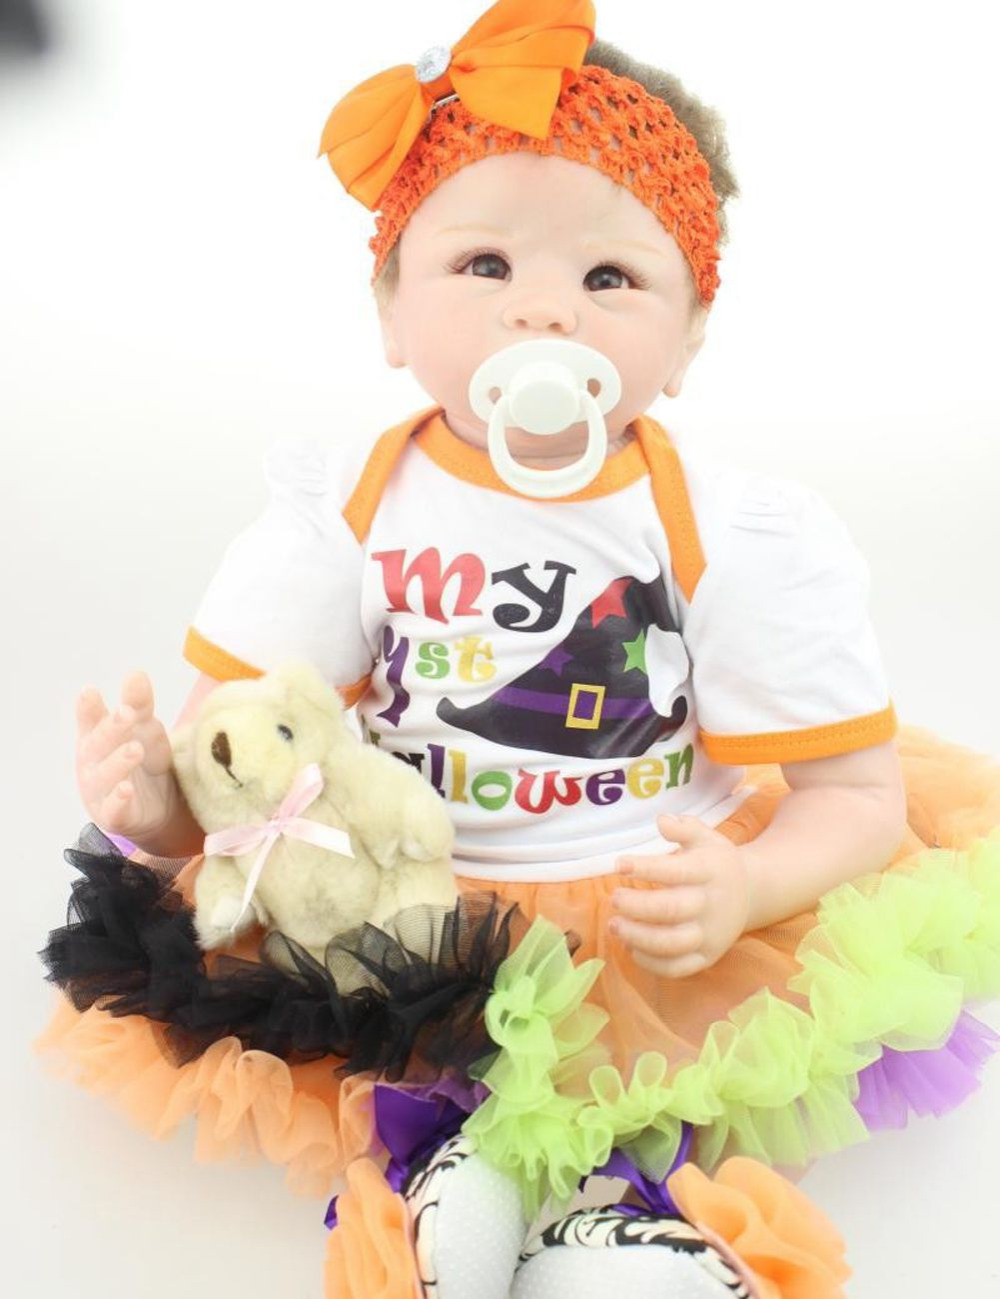 22inch Silicone Reborn Baby Lifelike Newborn Baby Doll Kits for Kids Playhouse Soft Stuffed Toys Gift<br><br>Aliexpress